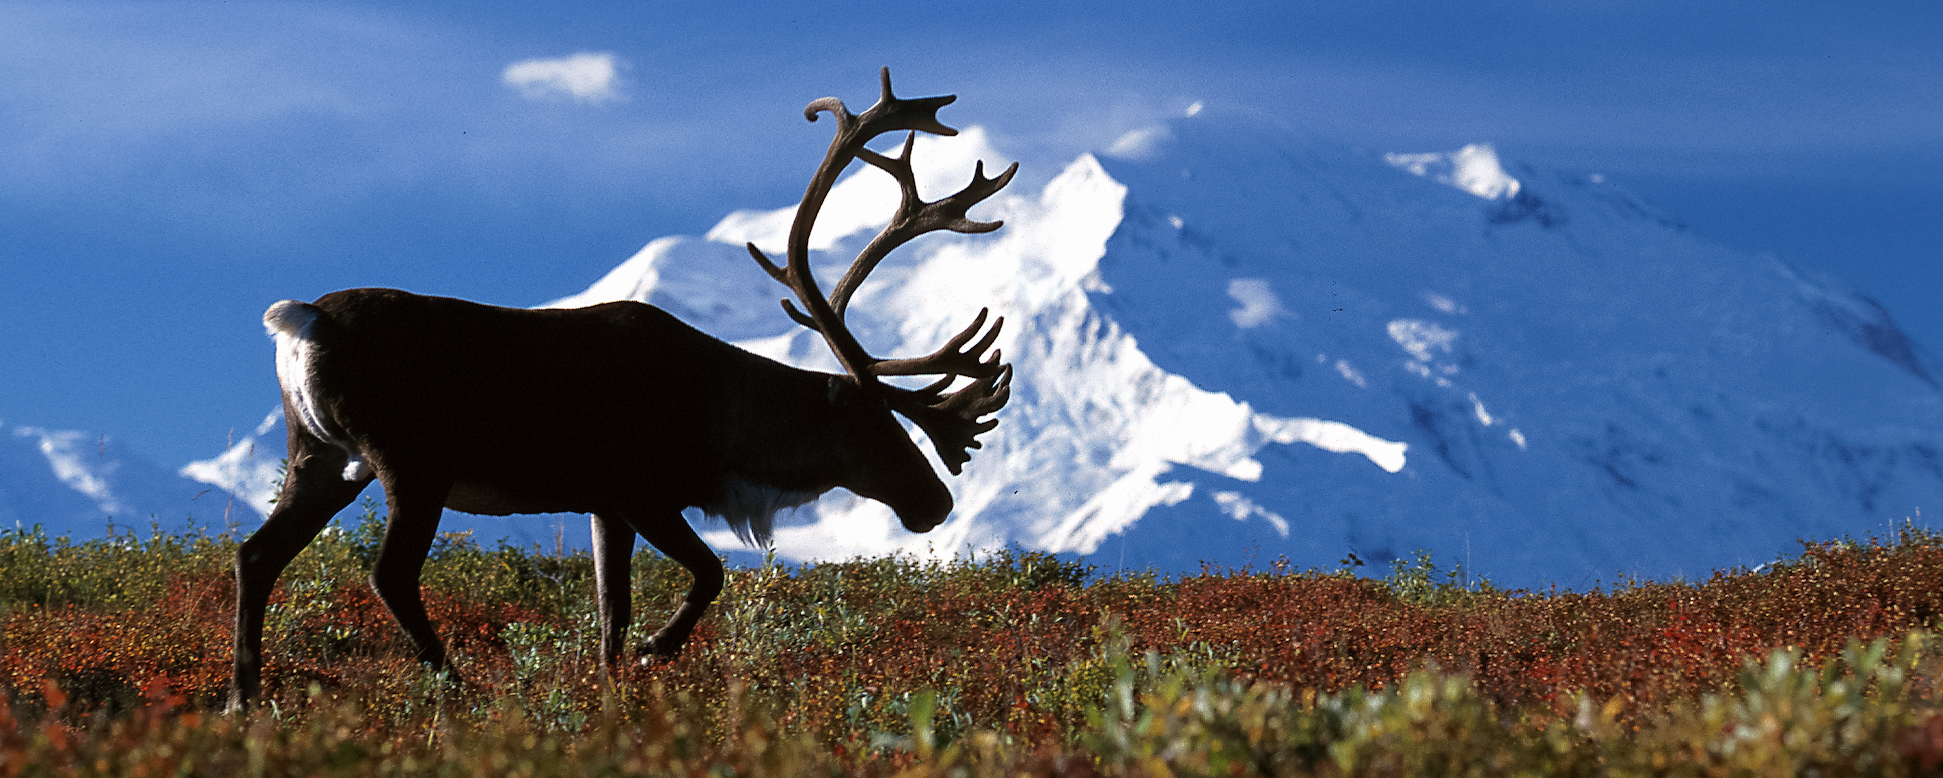 Caribou have drastically dropped in population size to endangerment levels, but their native predators aren't the problem.